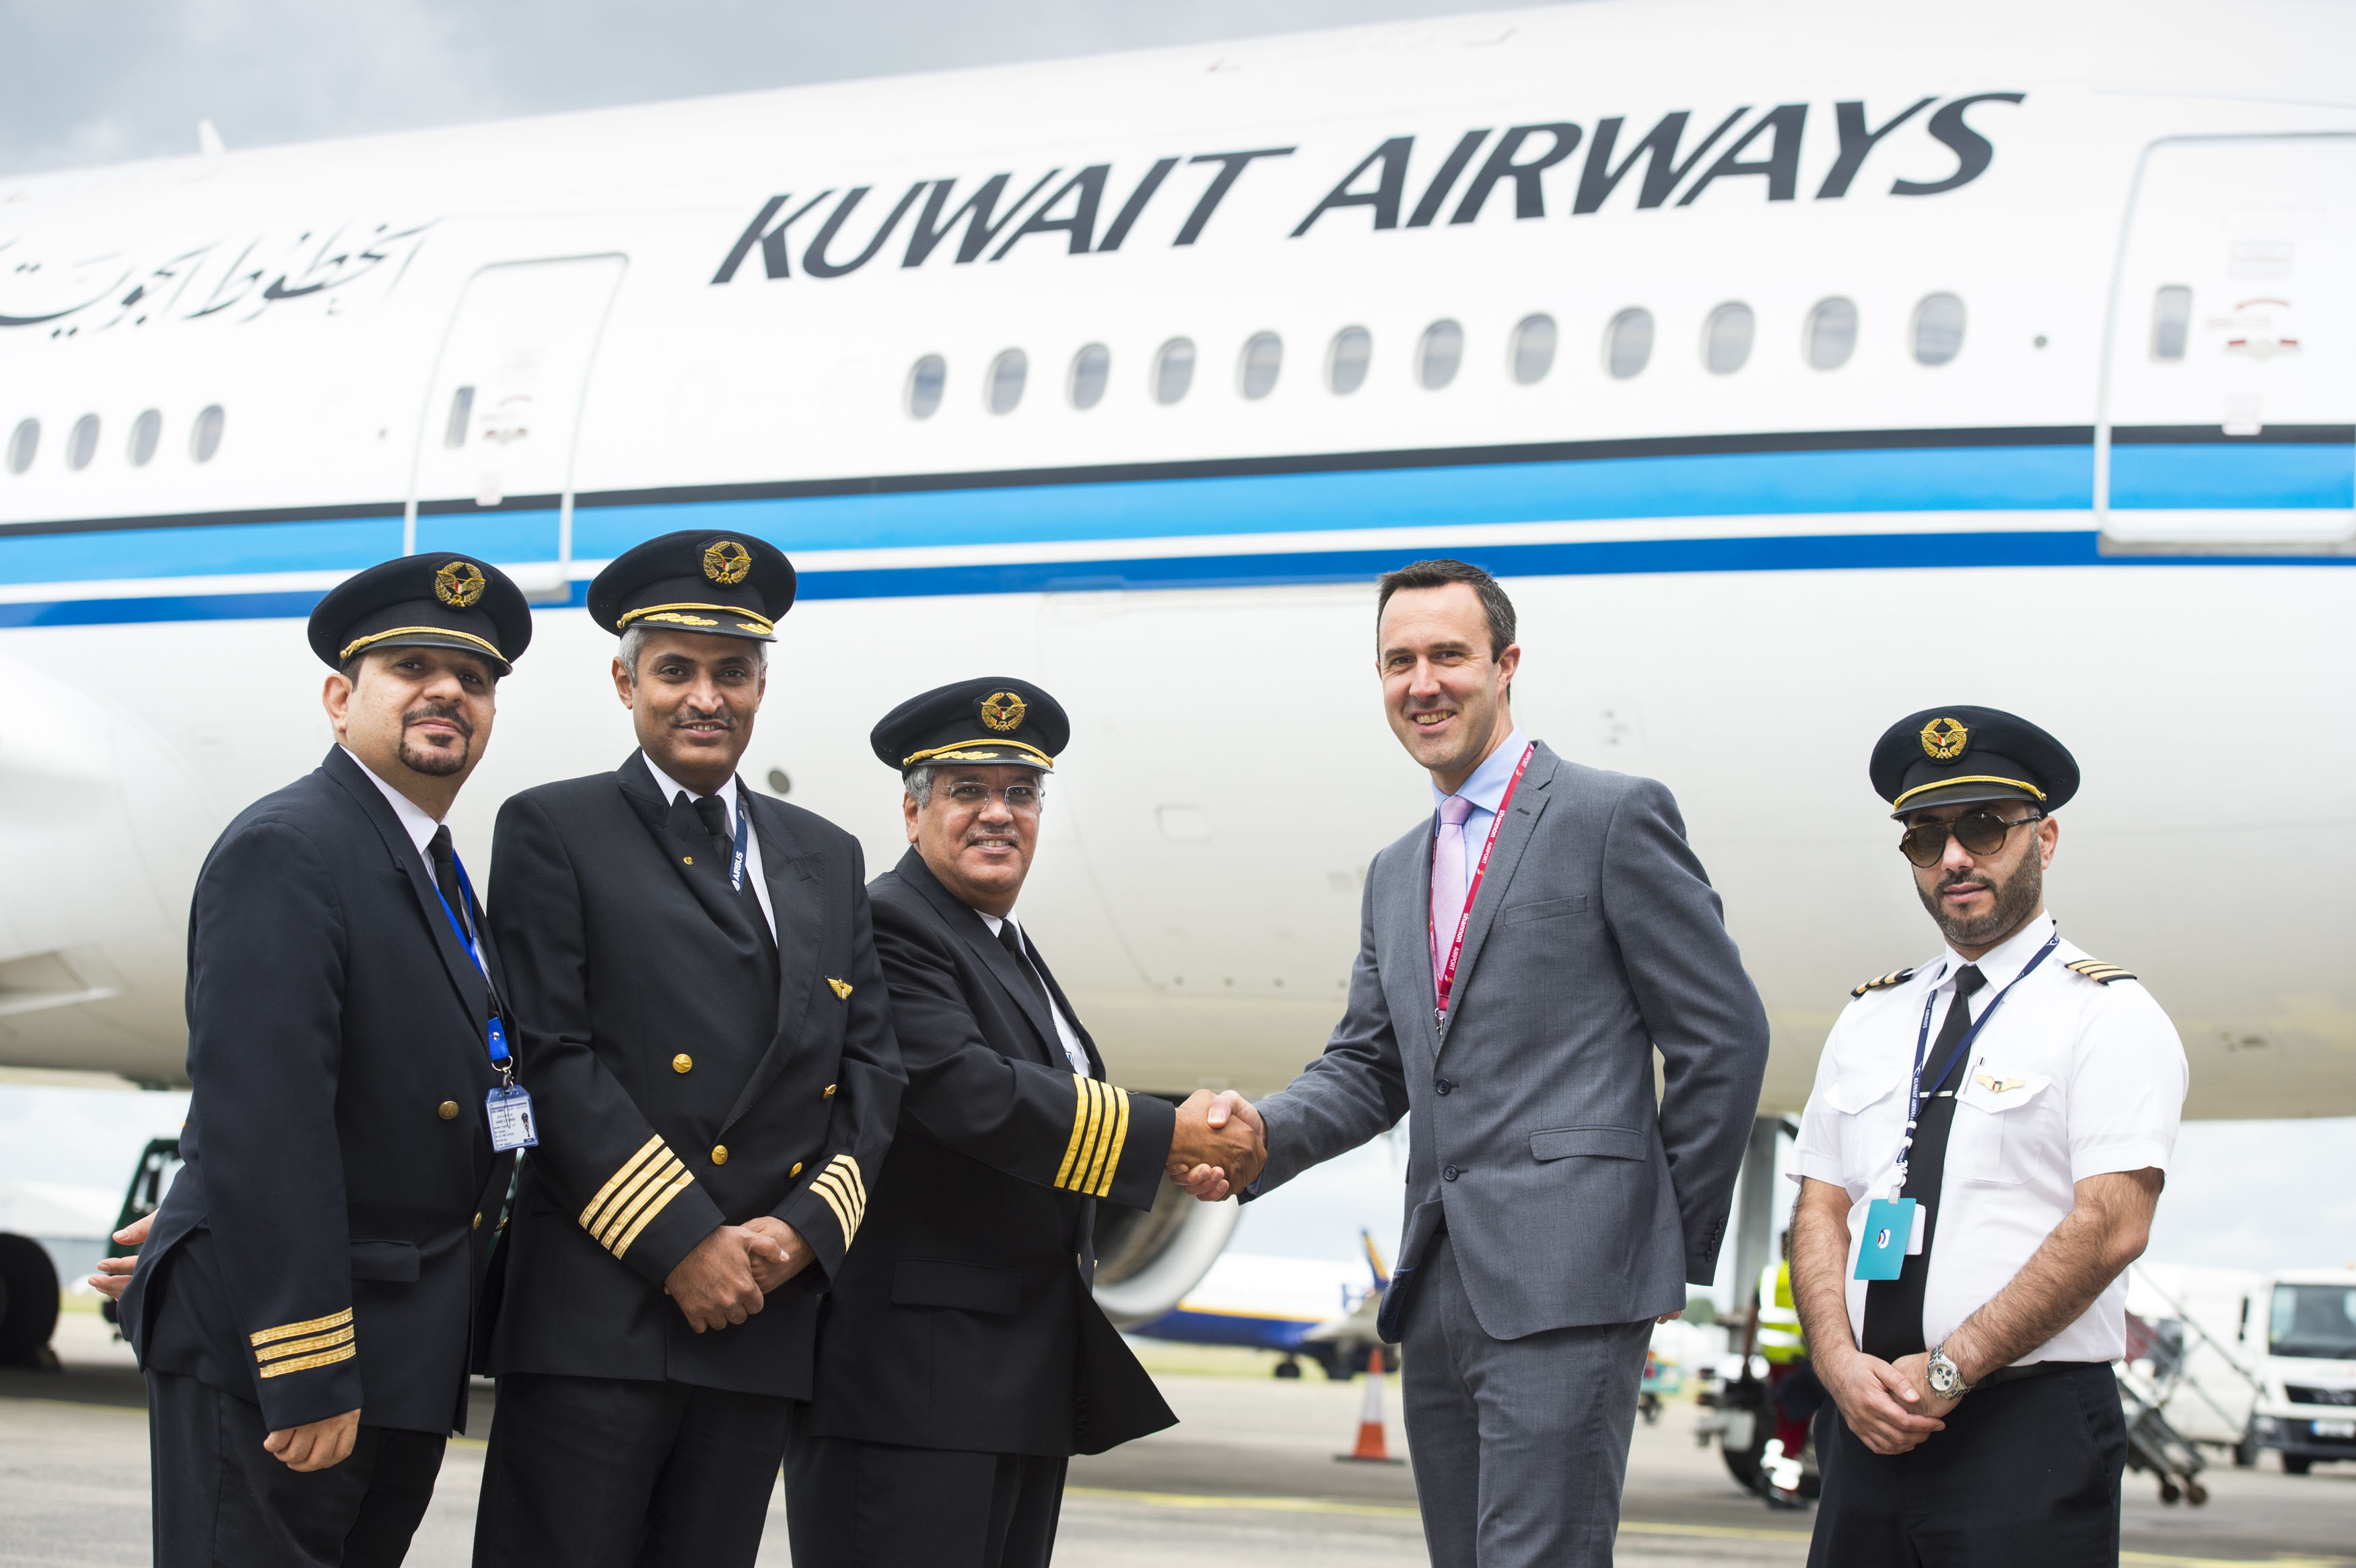 Kuwait Airways Shannon service